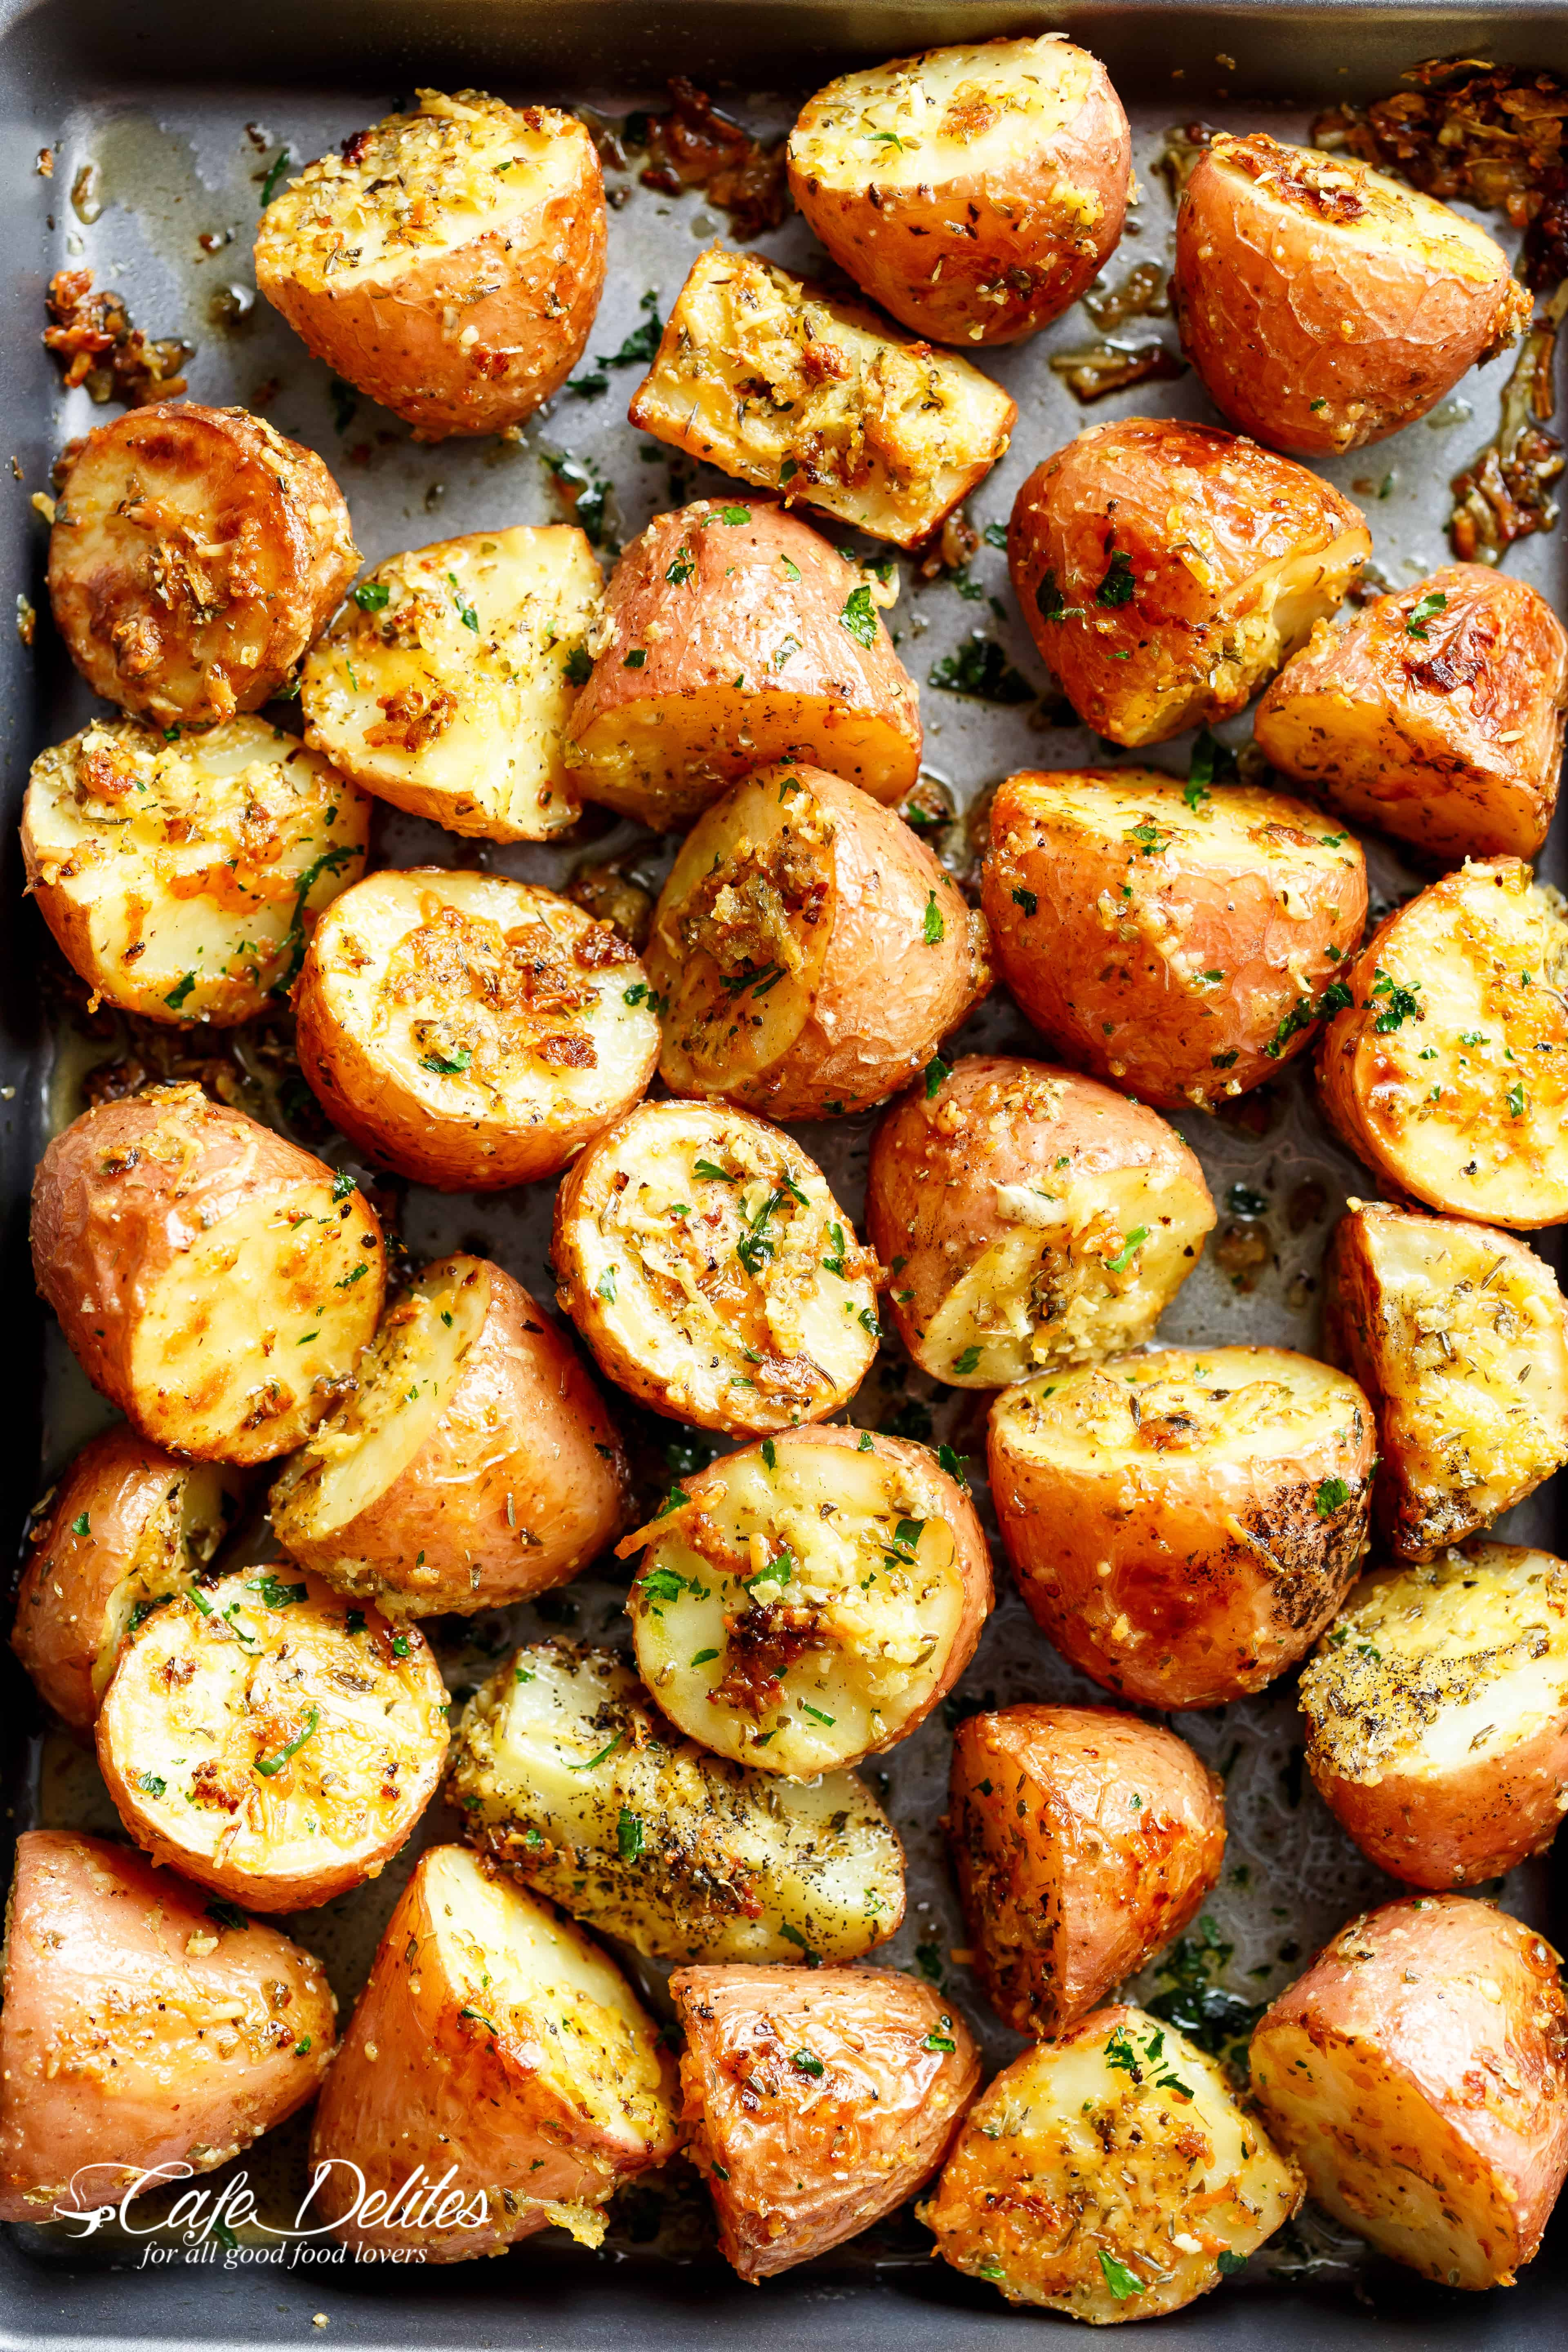 Browned Butter Parmesan Roasted Potatoes - Cafe Delites